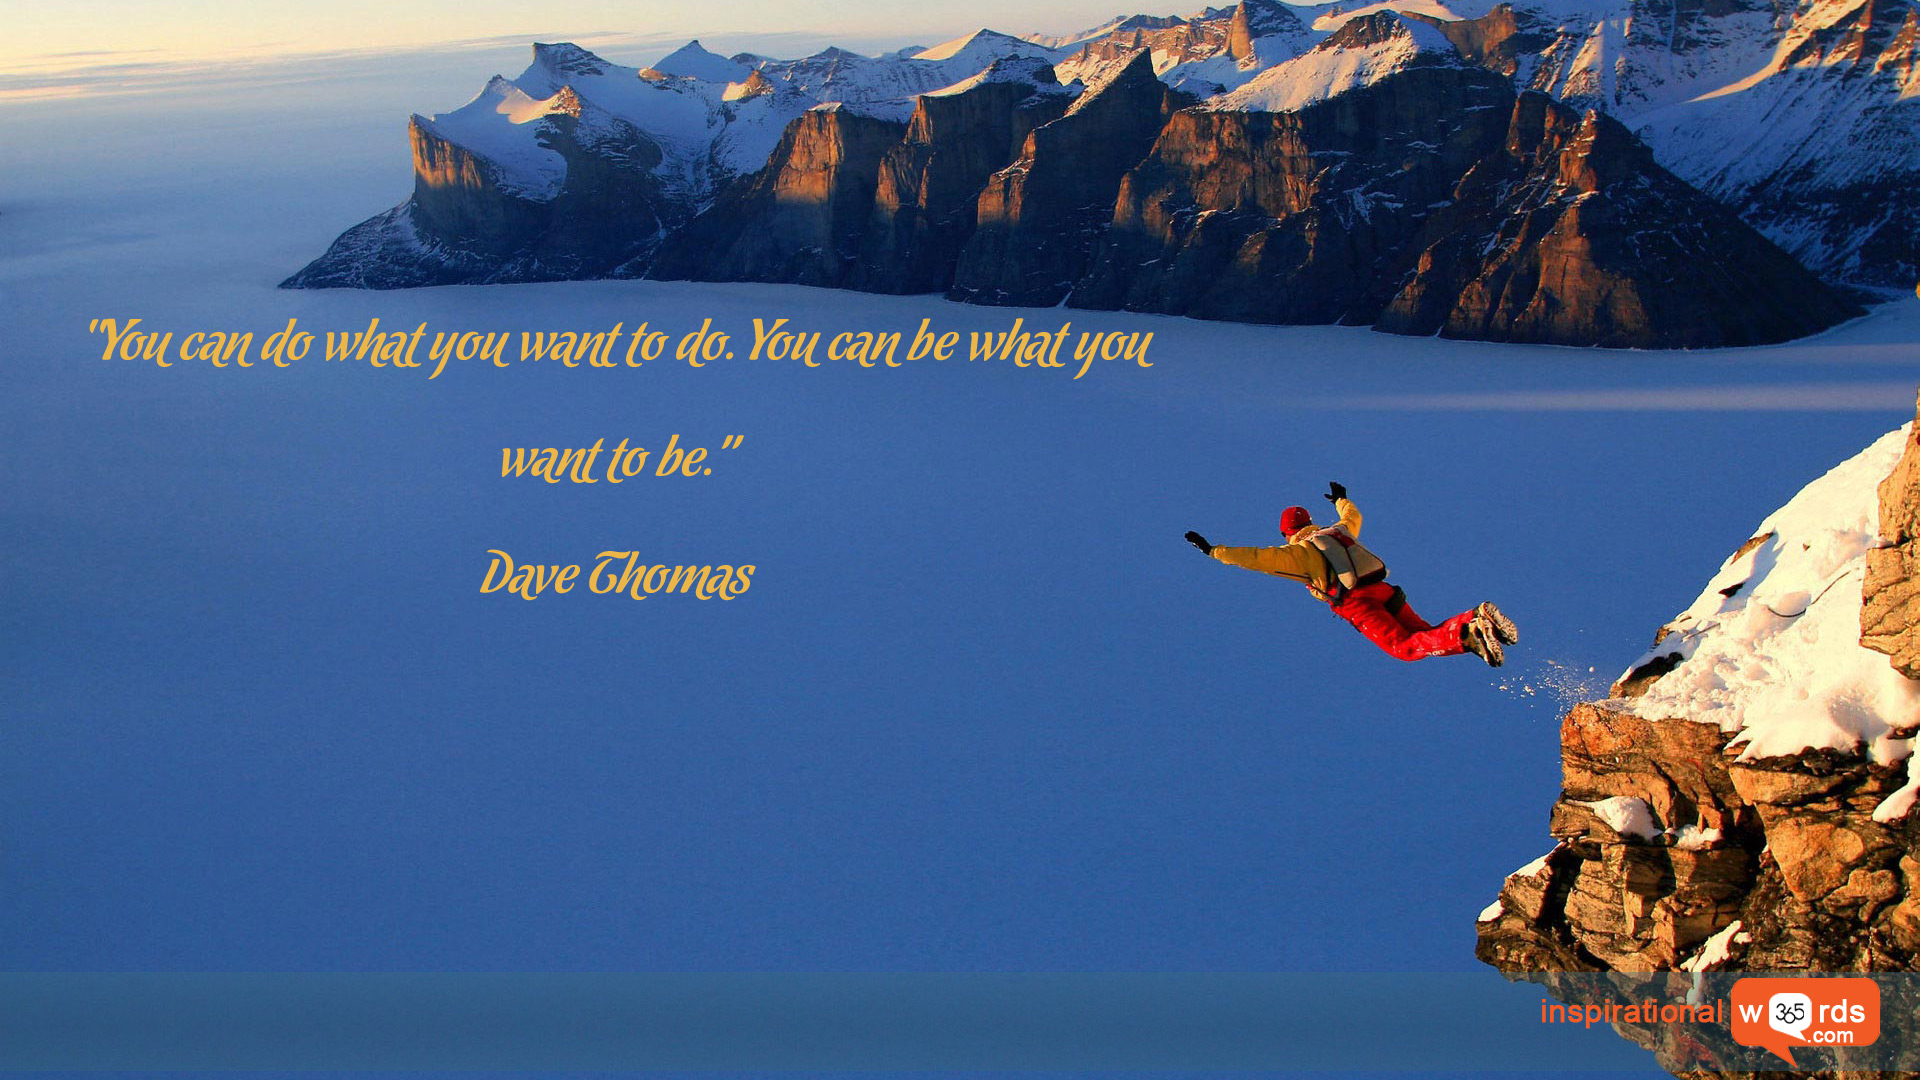 Inspirational Wallpaper Quote by Dave Thomas